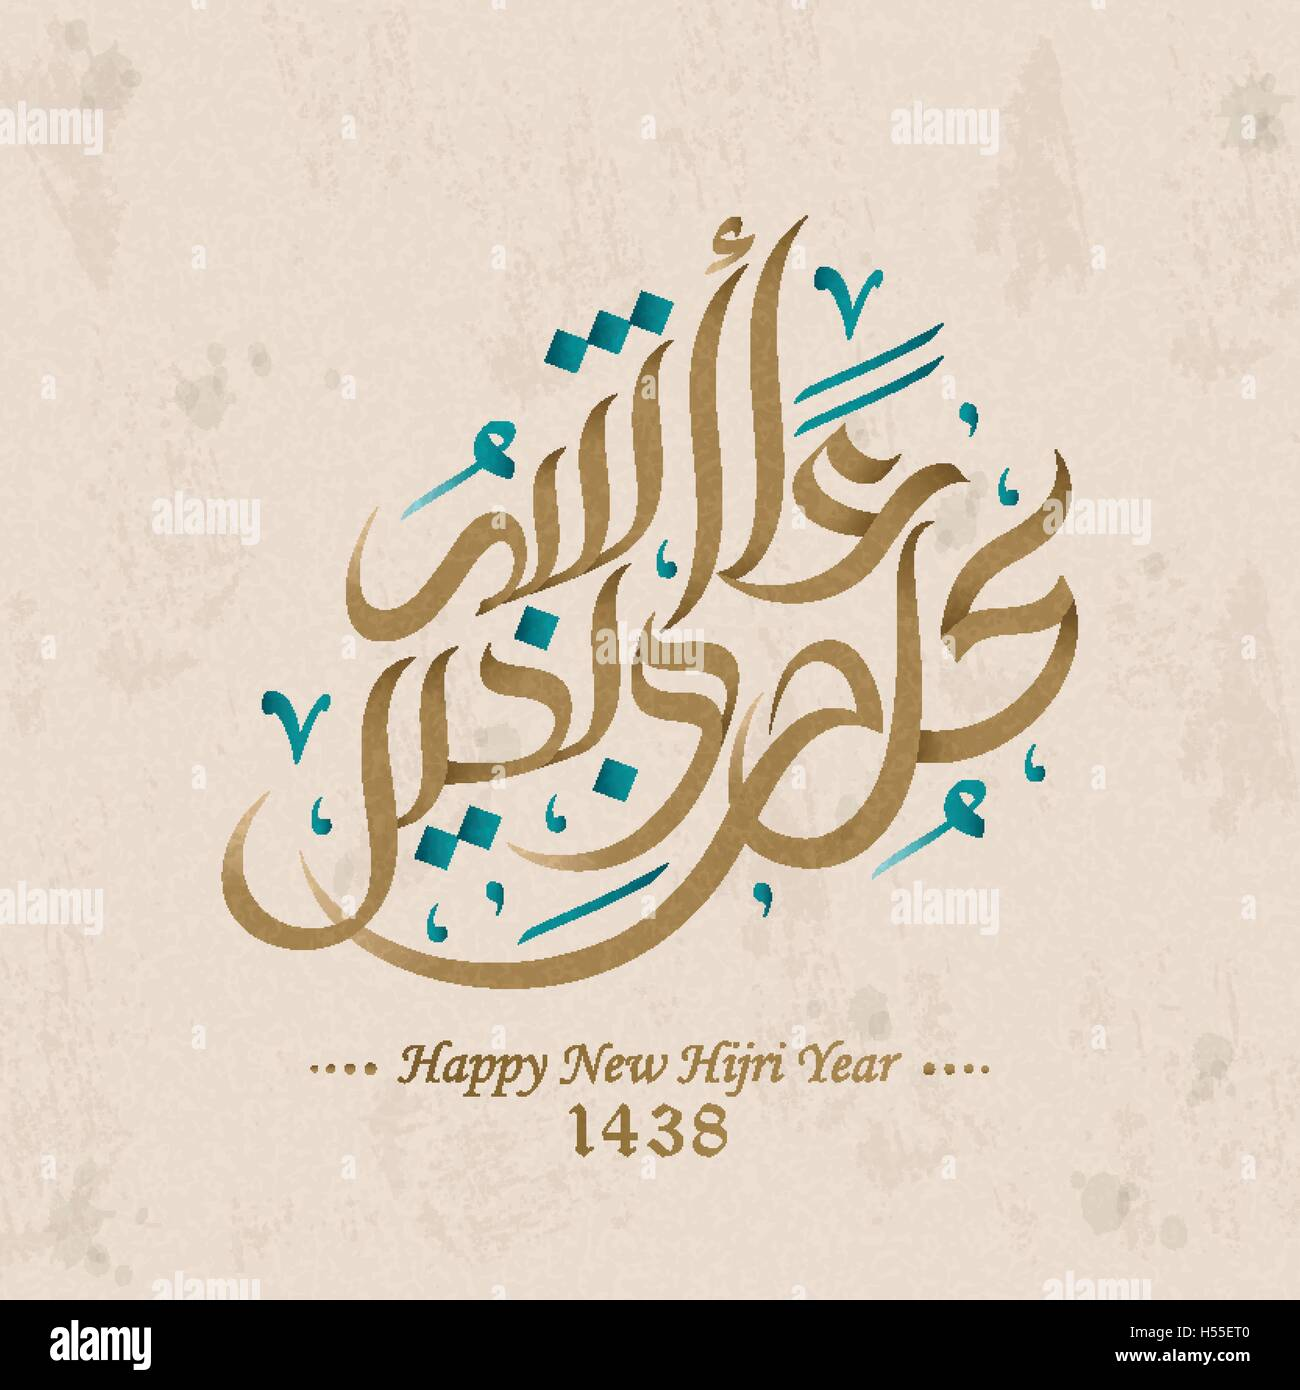 happy new hijri year calligraphy design with arabic style decoration